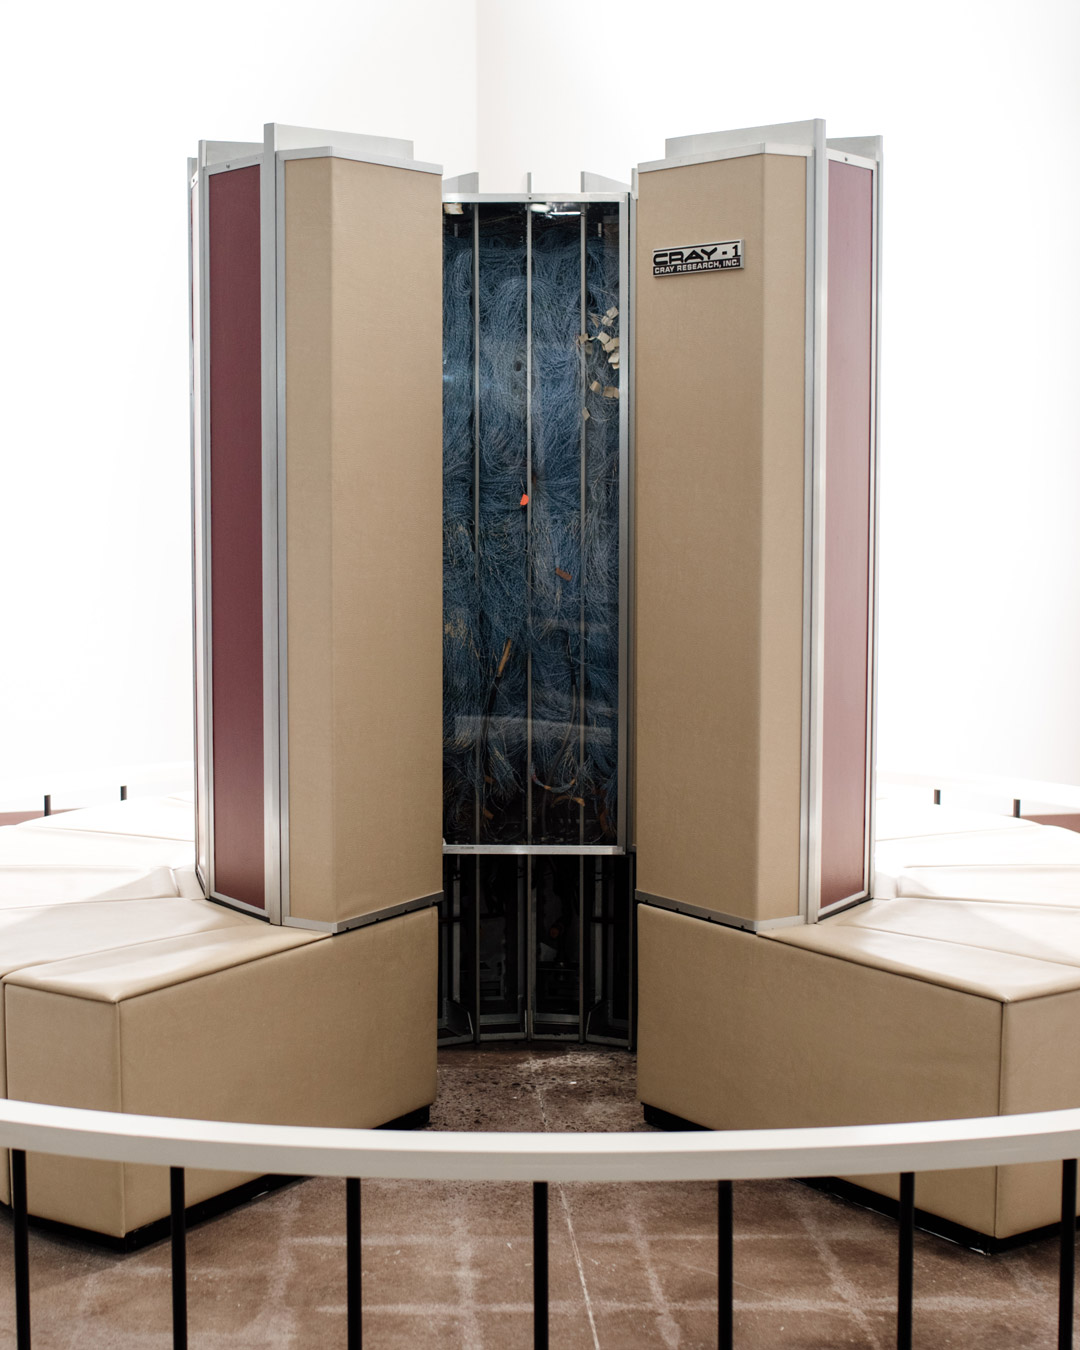 Computer Museum of America - Cray 1A